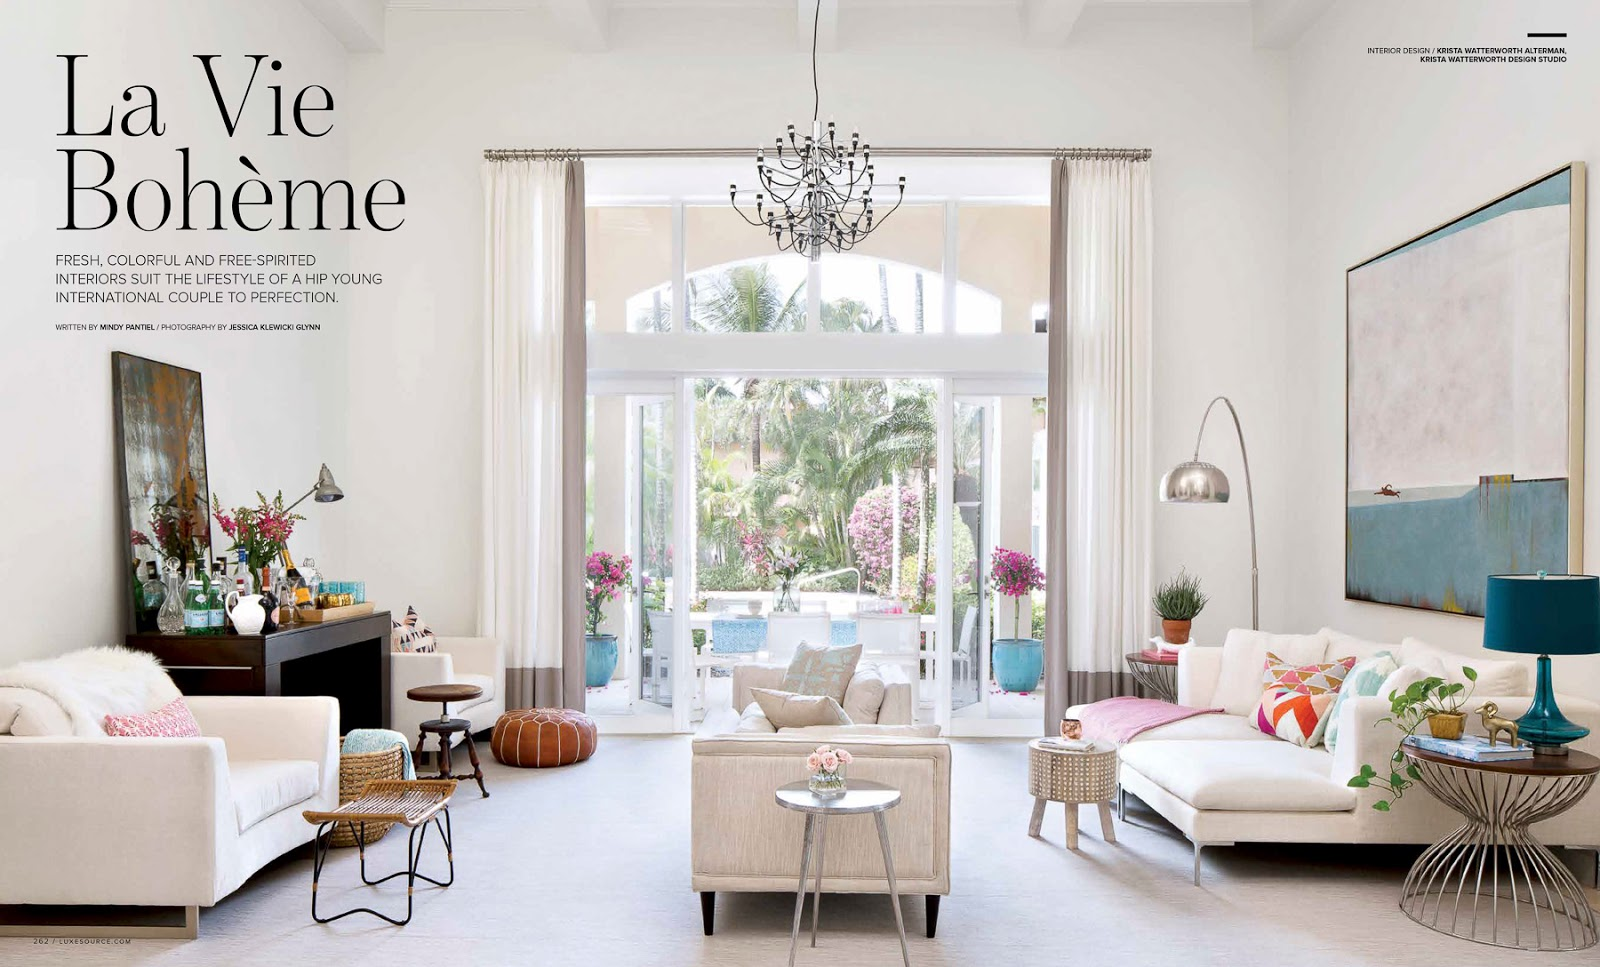 Interior Design By Krista Watterworth Check It Out In Luxe Palm Beach March April 2016 Issue On Newsstands Now